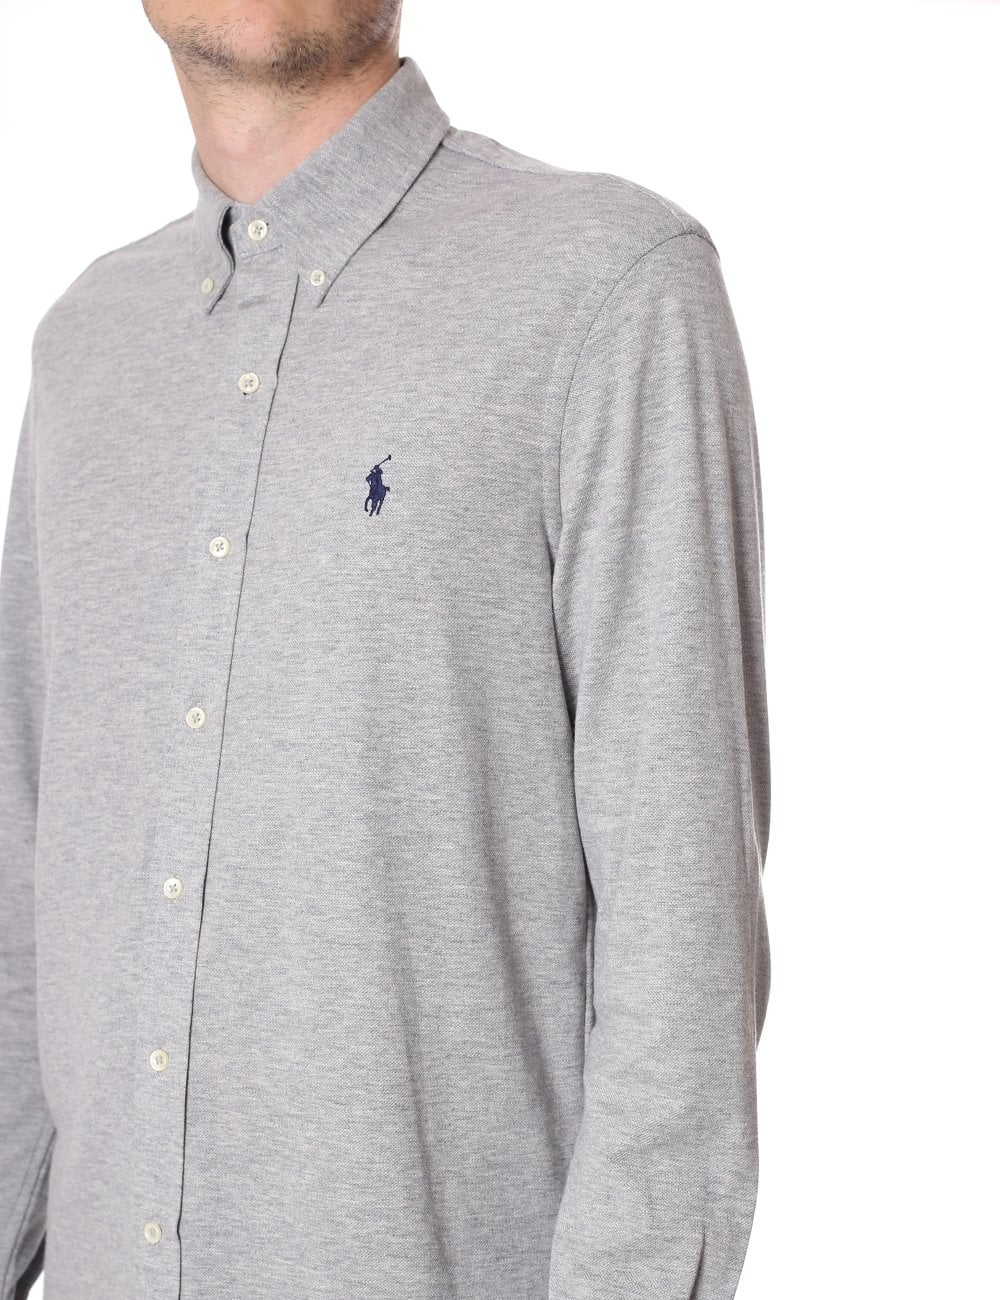 b4be775ad7e3 Polo Ralph Lauren Men s Featherweight Mesh Long Sleeve Polo Top